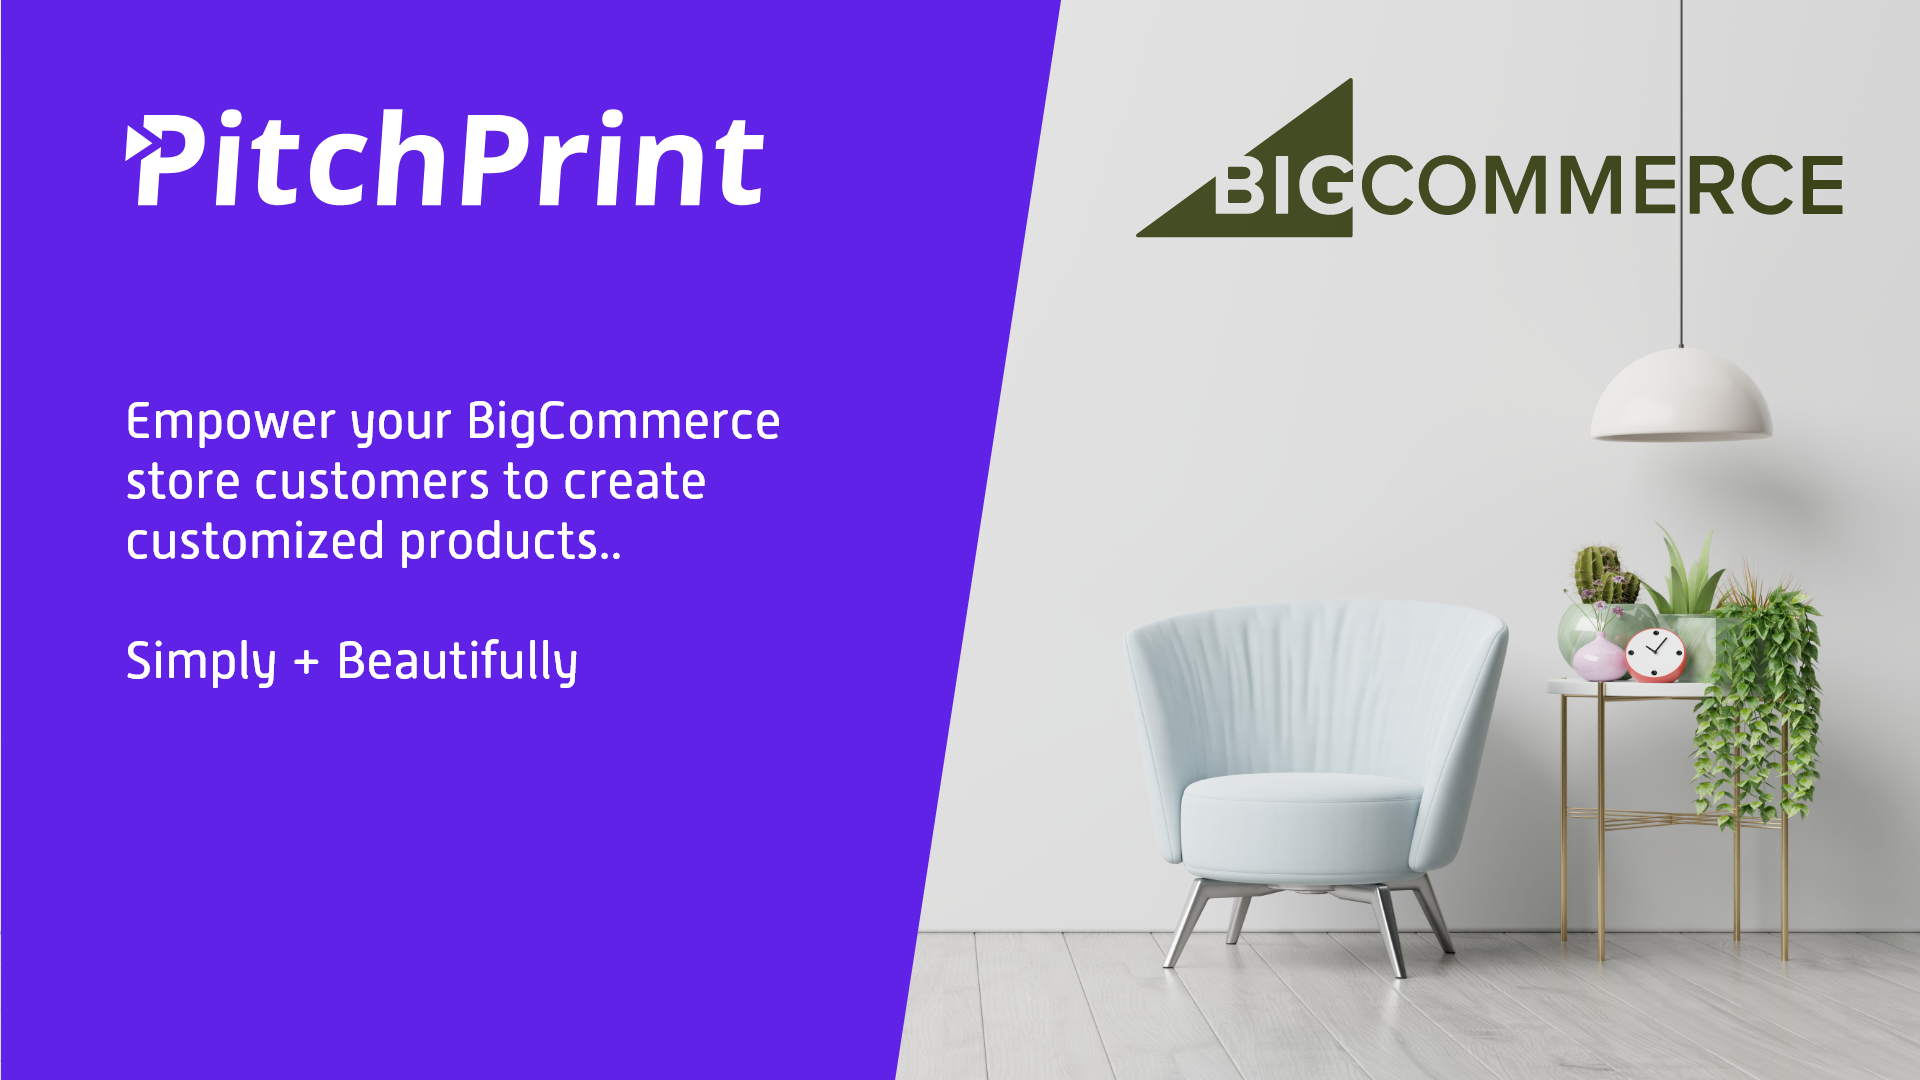 PitchPrint + BigCommerce